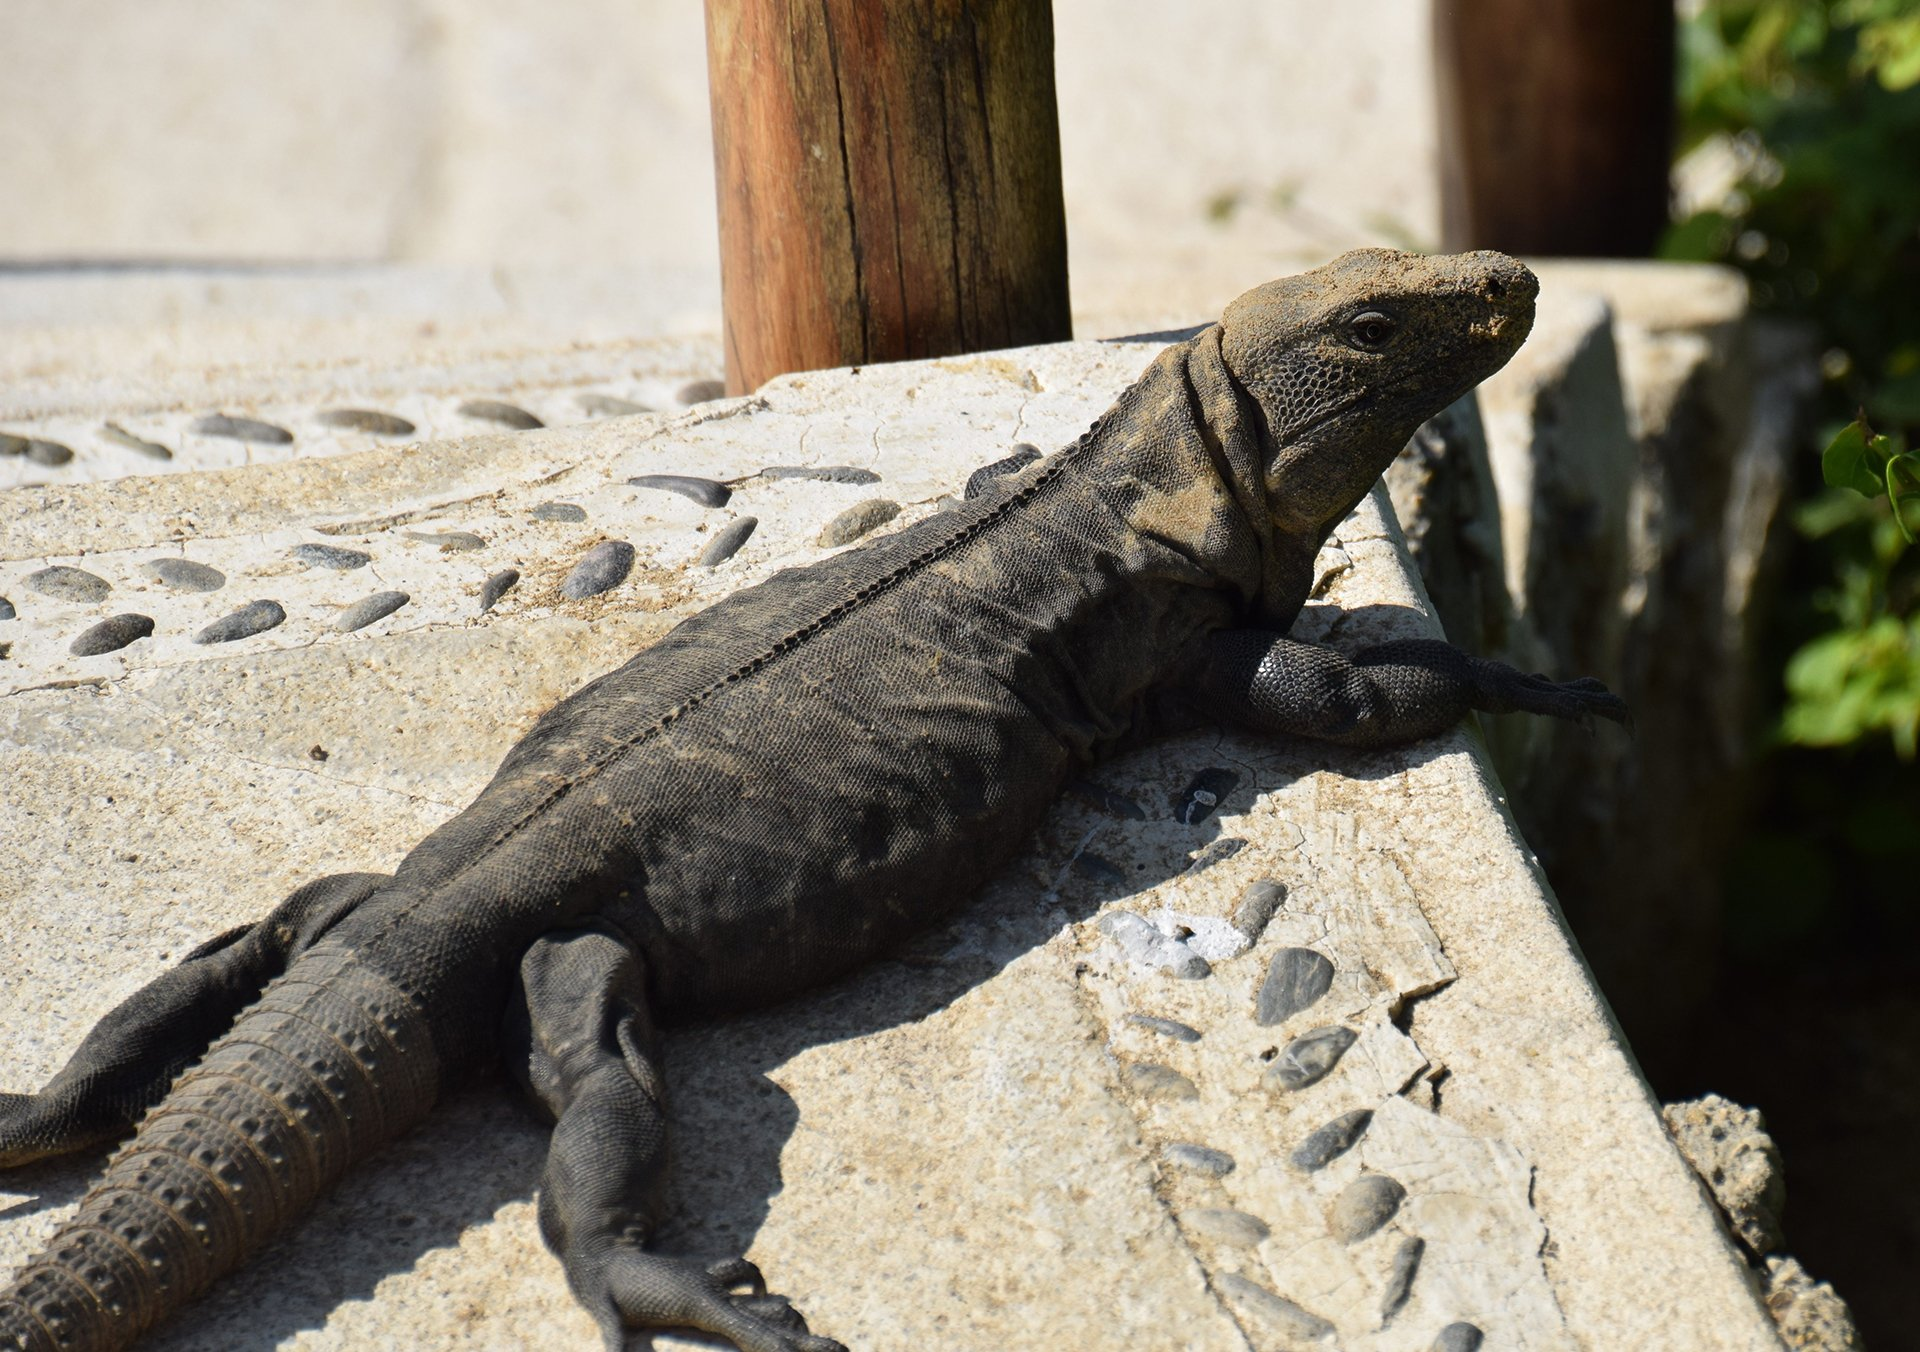 Friendly iguanas bask in the sun